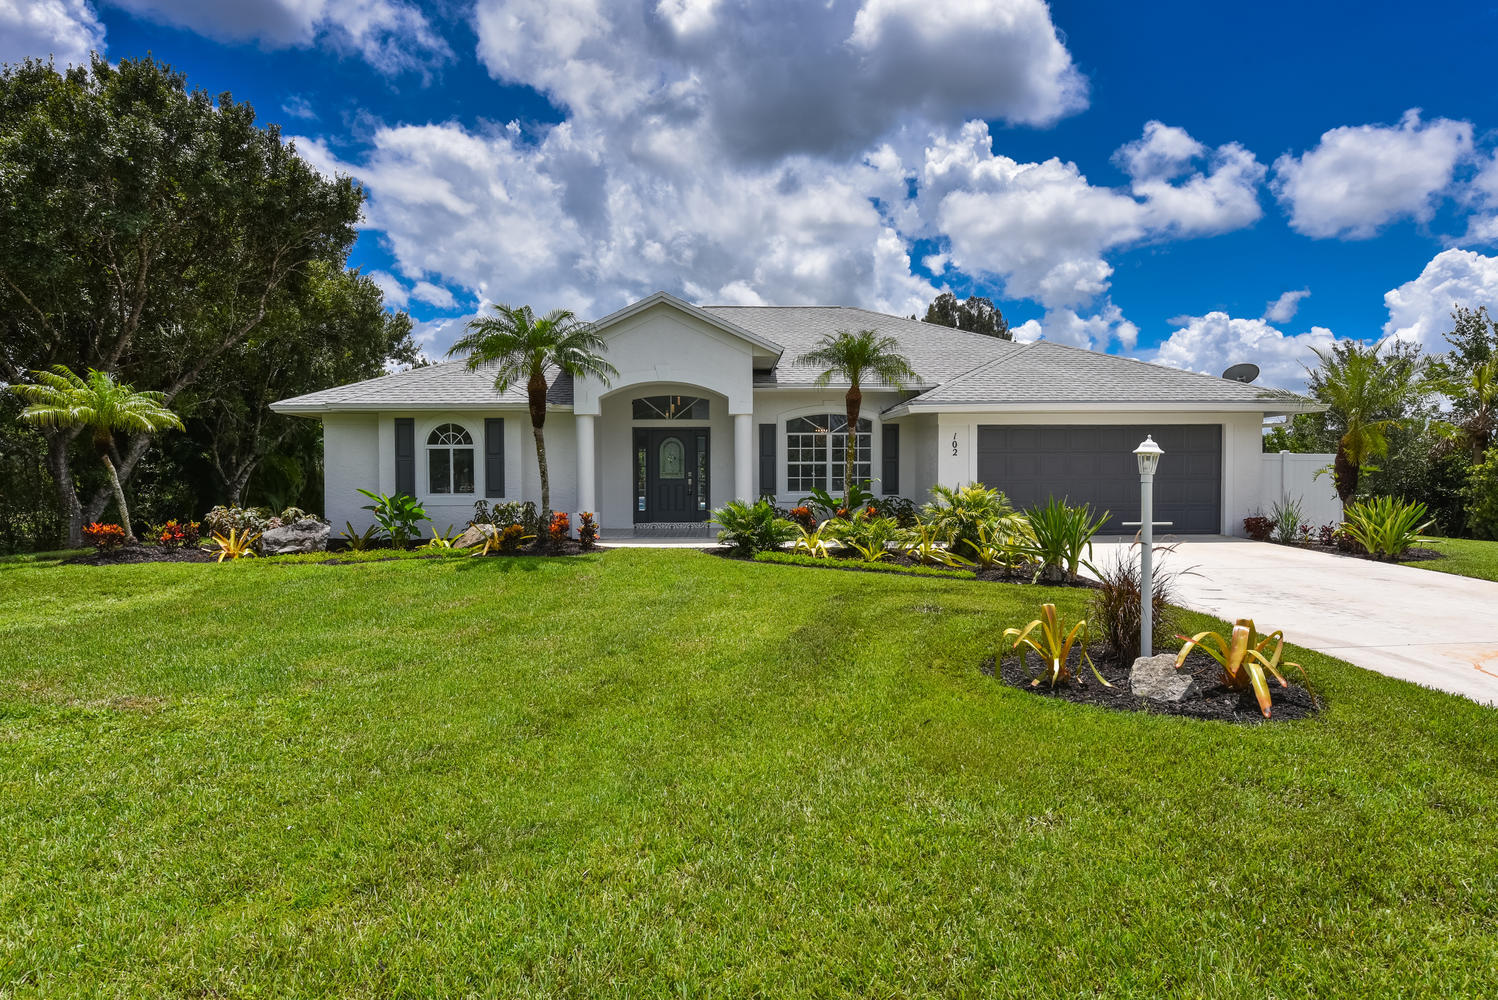 102 SE Ashley Oaks Way, Stuart, Florida